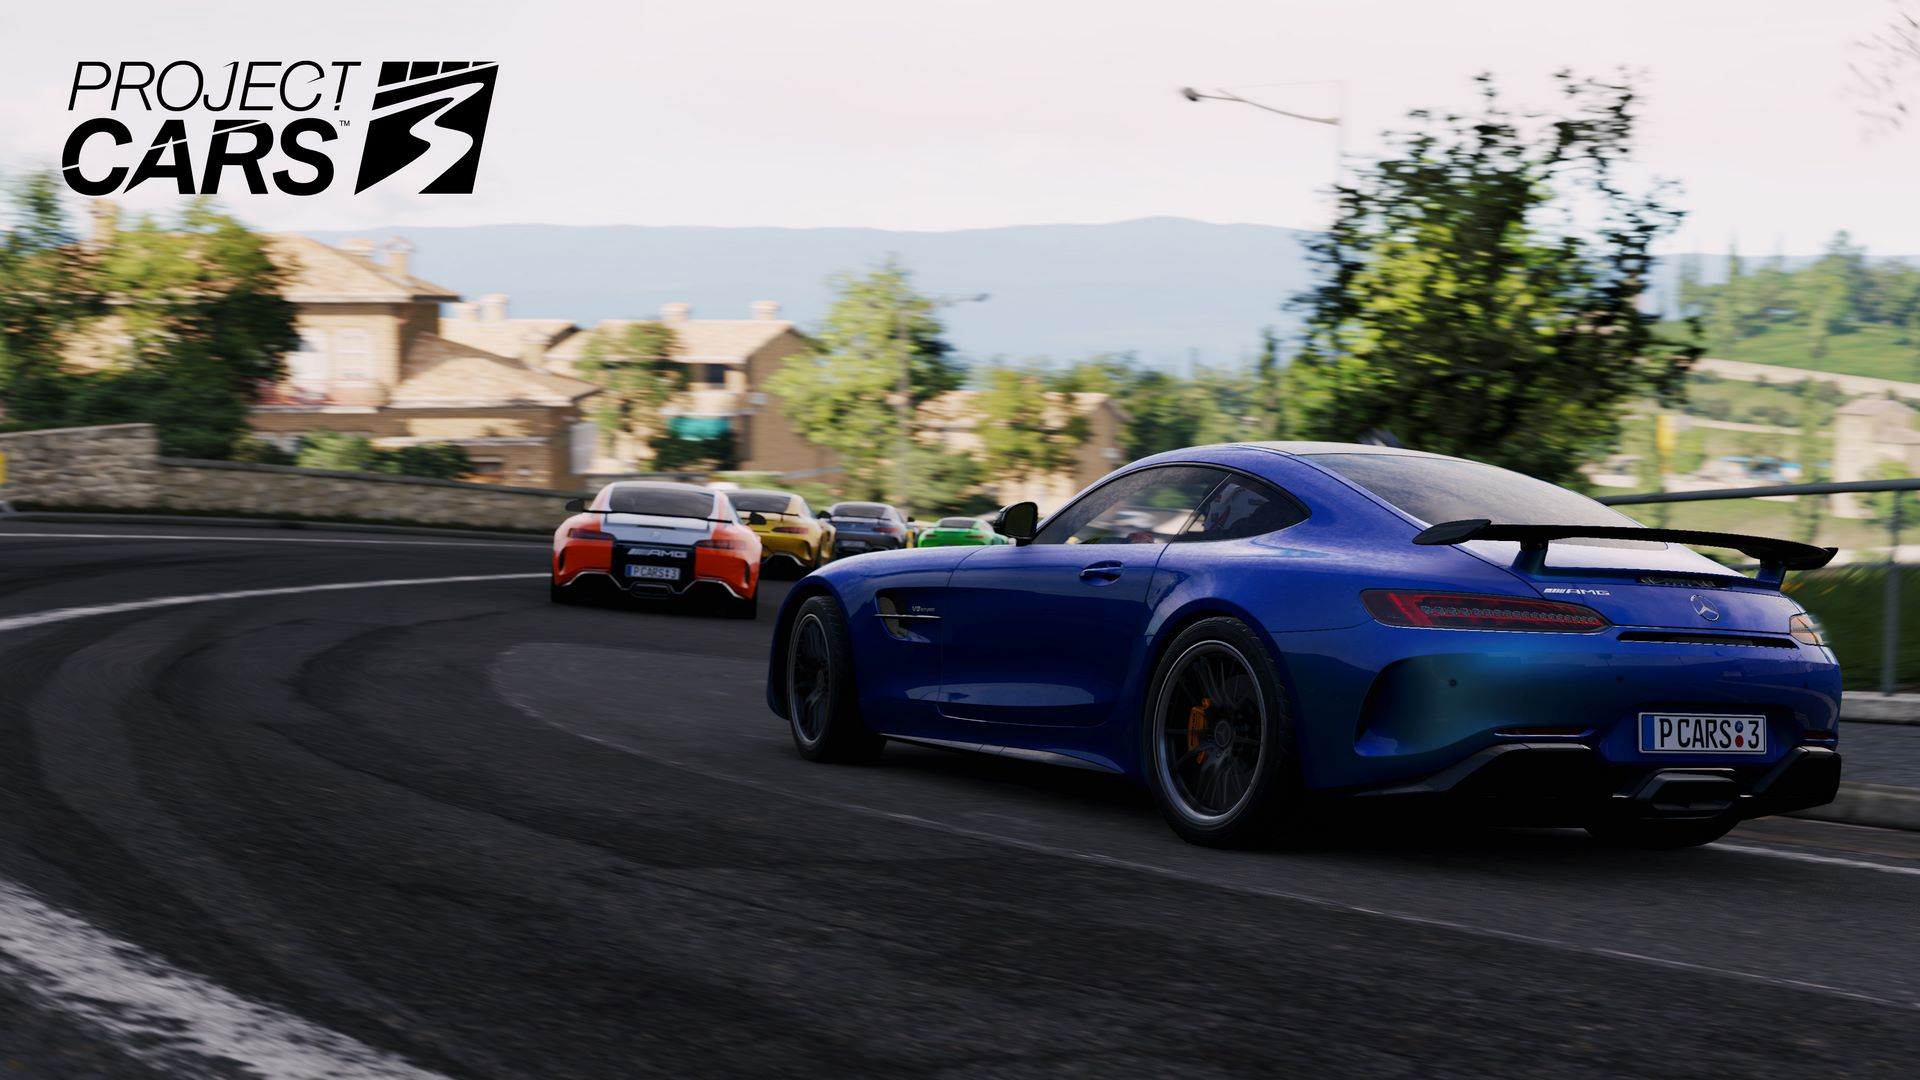 Project-Cars-3-7